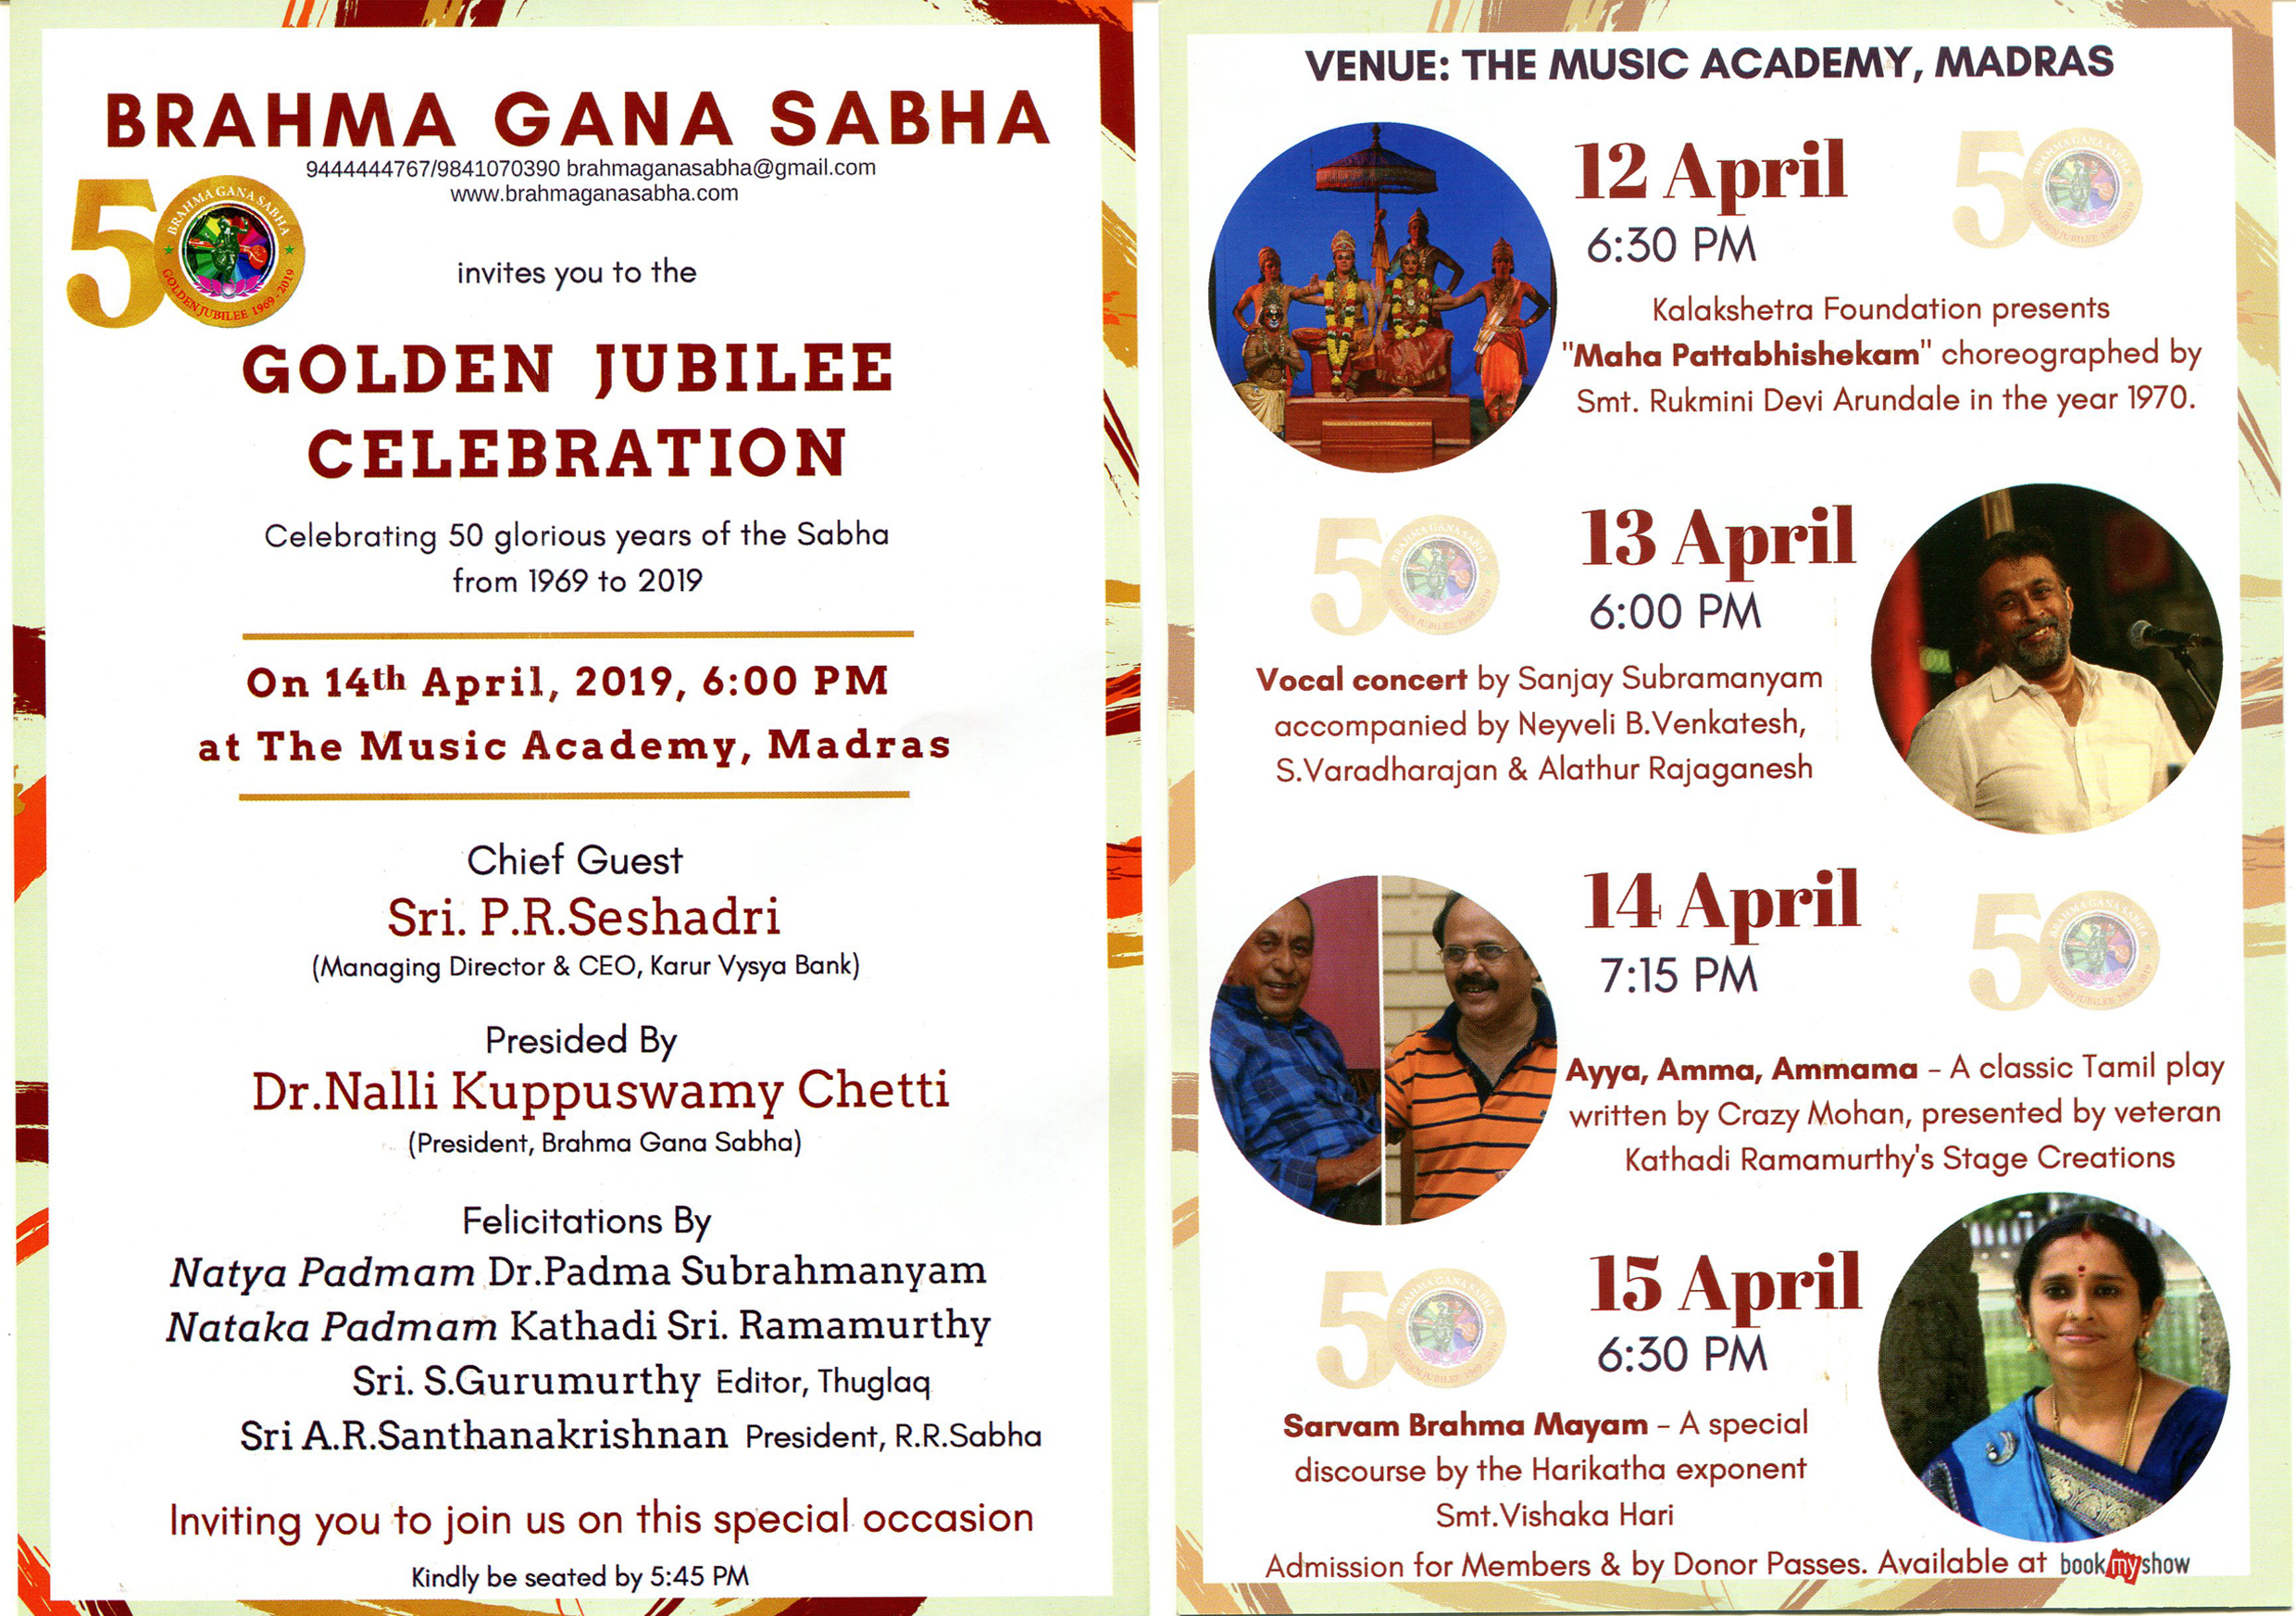 Brahma Gana Sabha 50 Golden Jubilee Celebration